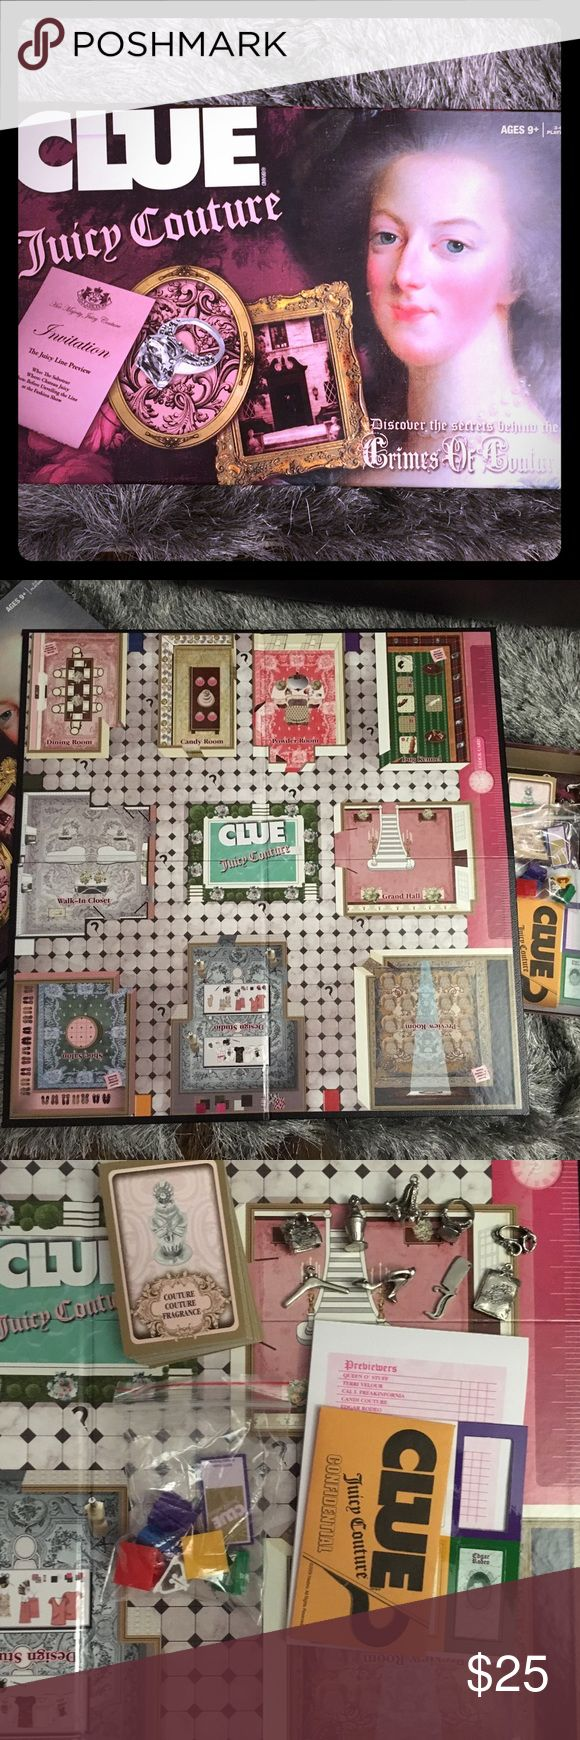 Juicy Couture Clue Board Game Juicy's version of Clue / Like new, has all pieces Juicy Couture Other